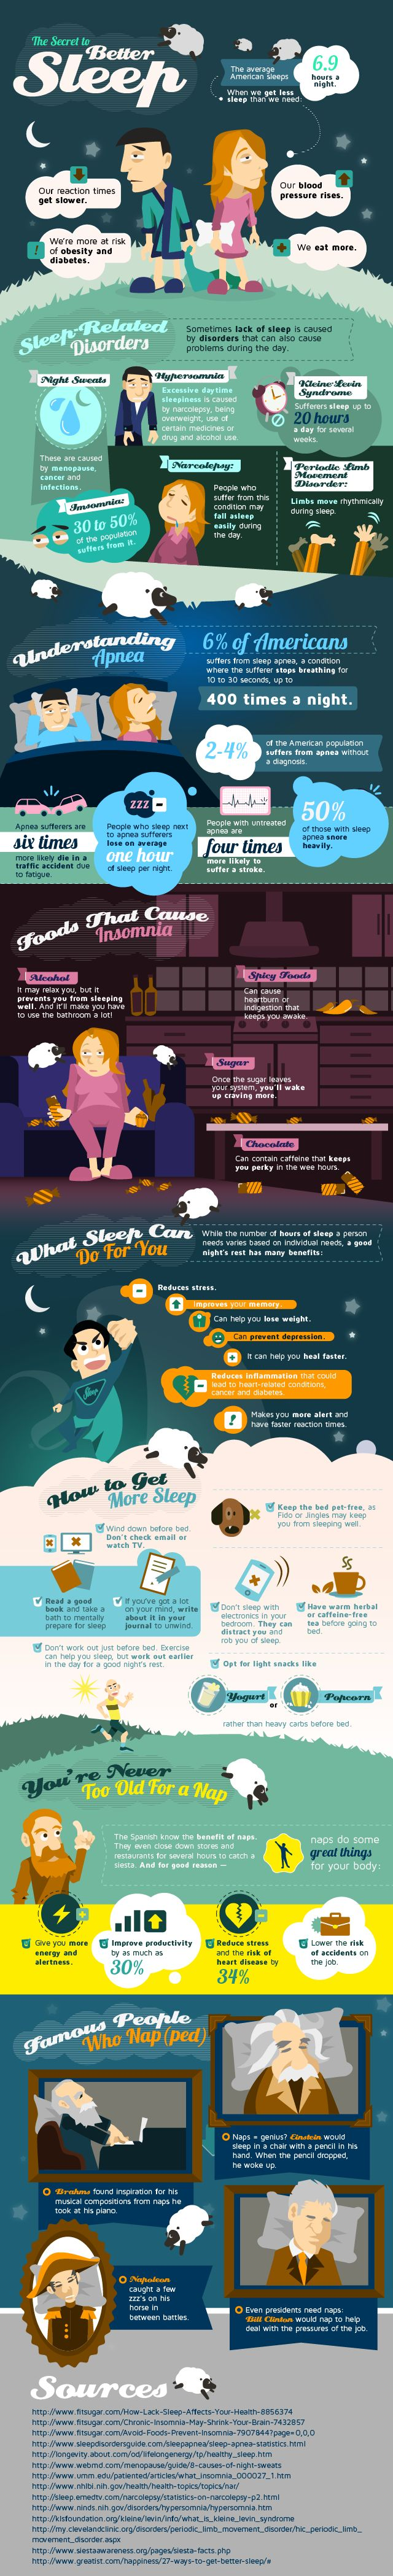 It's National Sleep Day, and Greatist has the need-to-know tips and tricks to help get you snoozing better than ever.